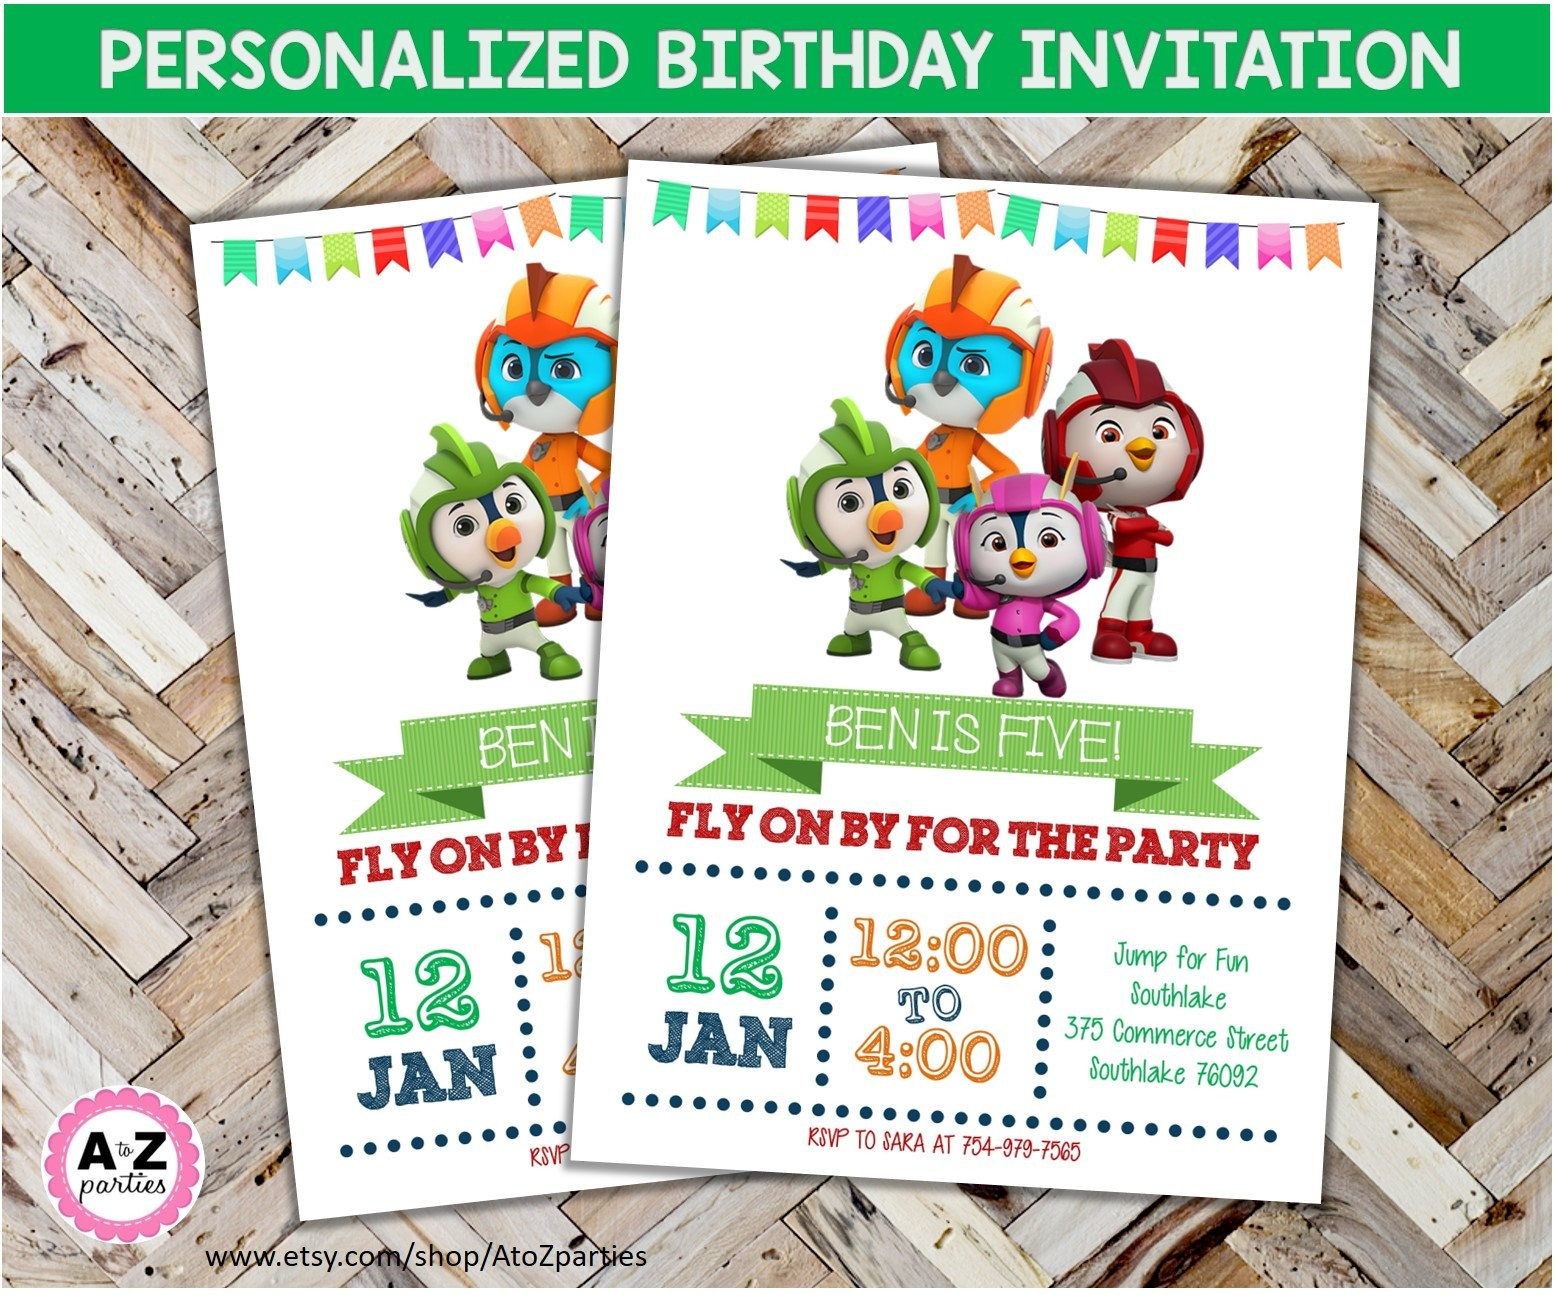 top wing personalized party invitation 5x7 print at home new